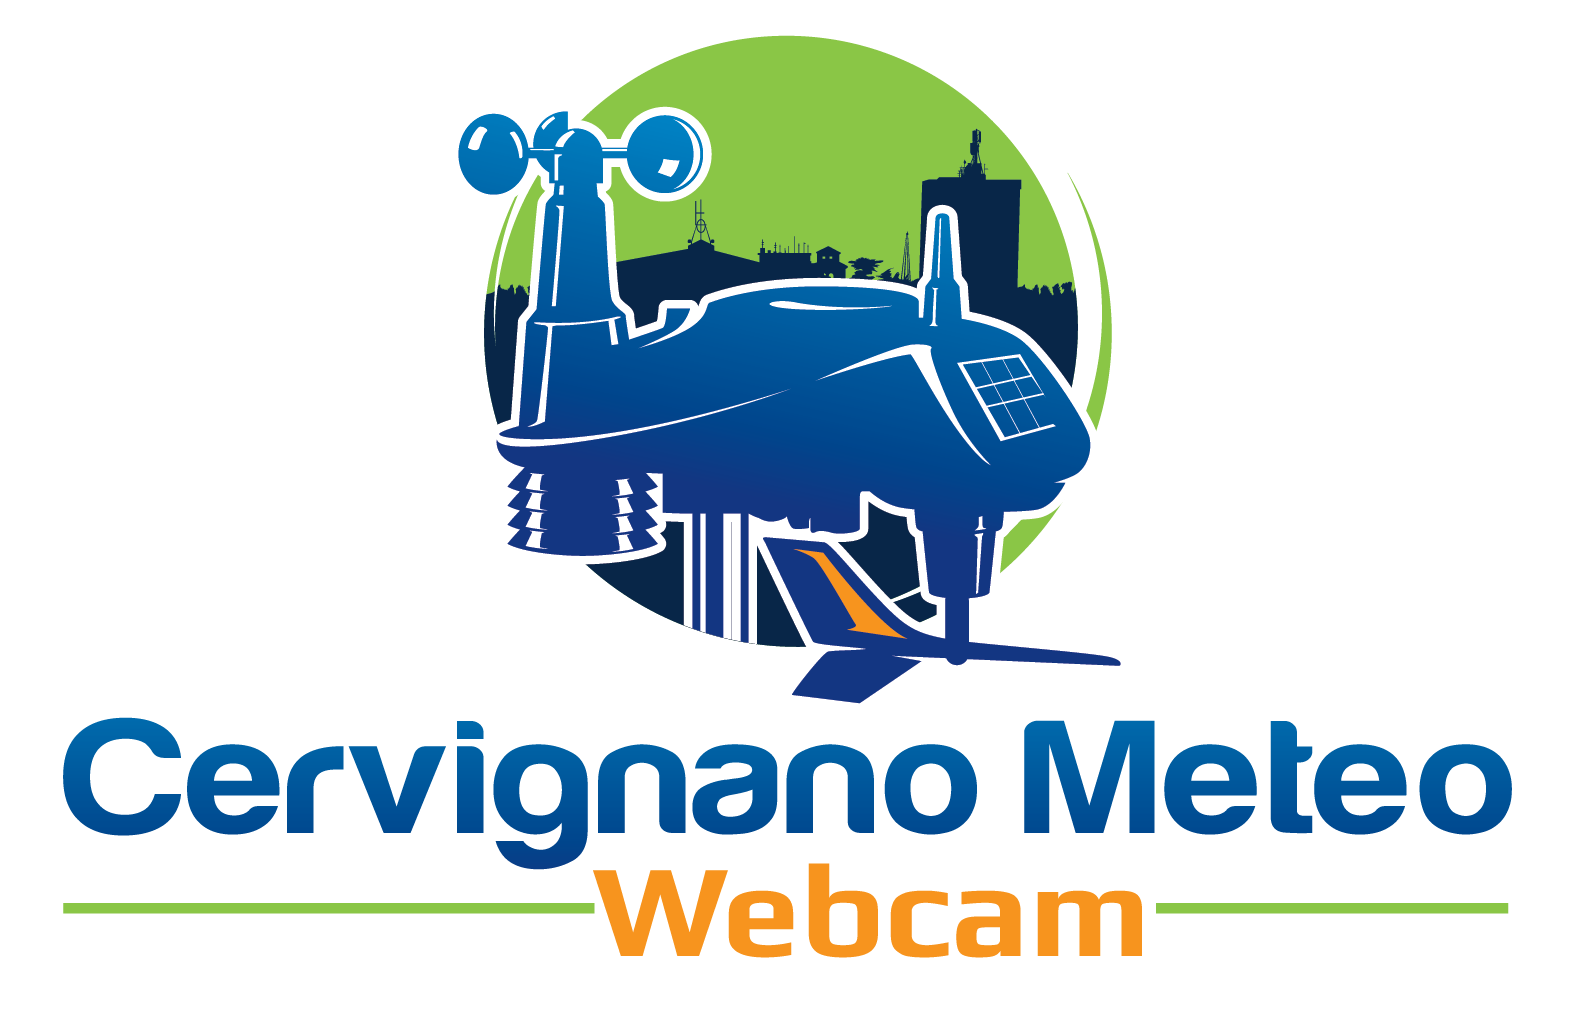 Cervignano Meteo Webcam